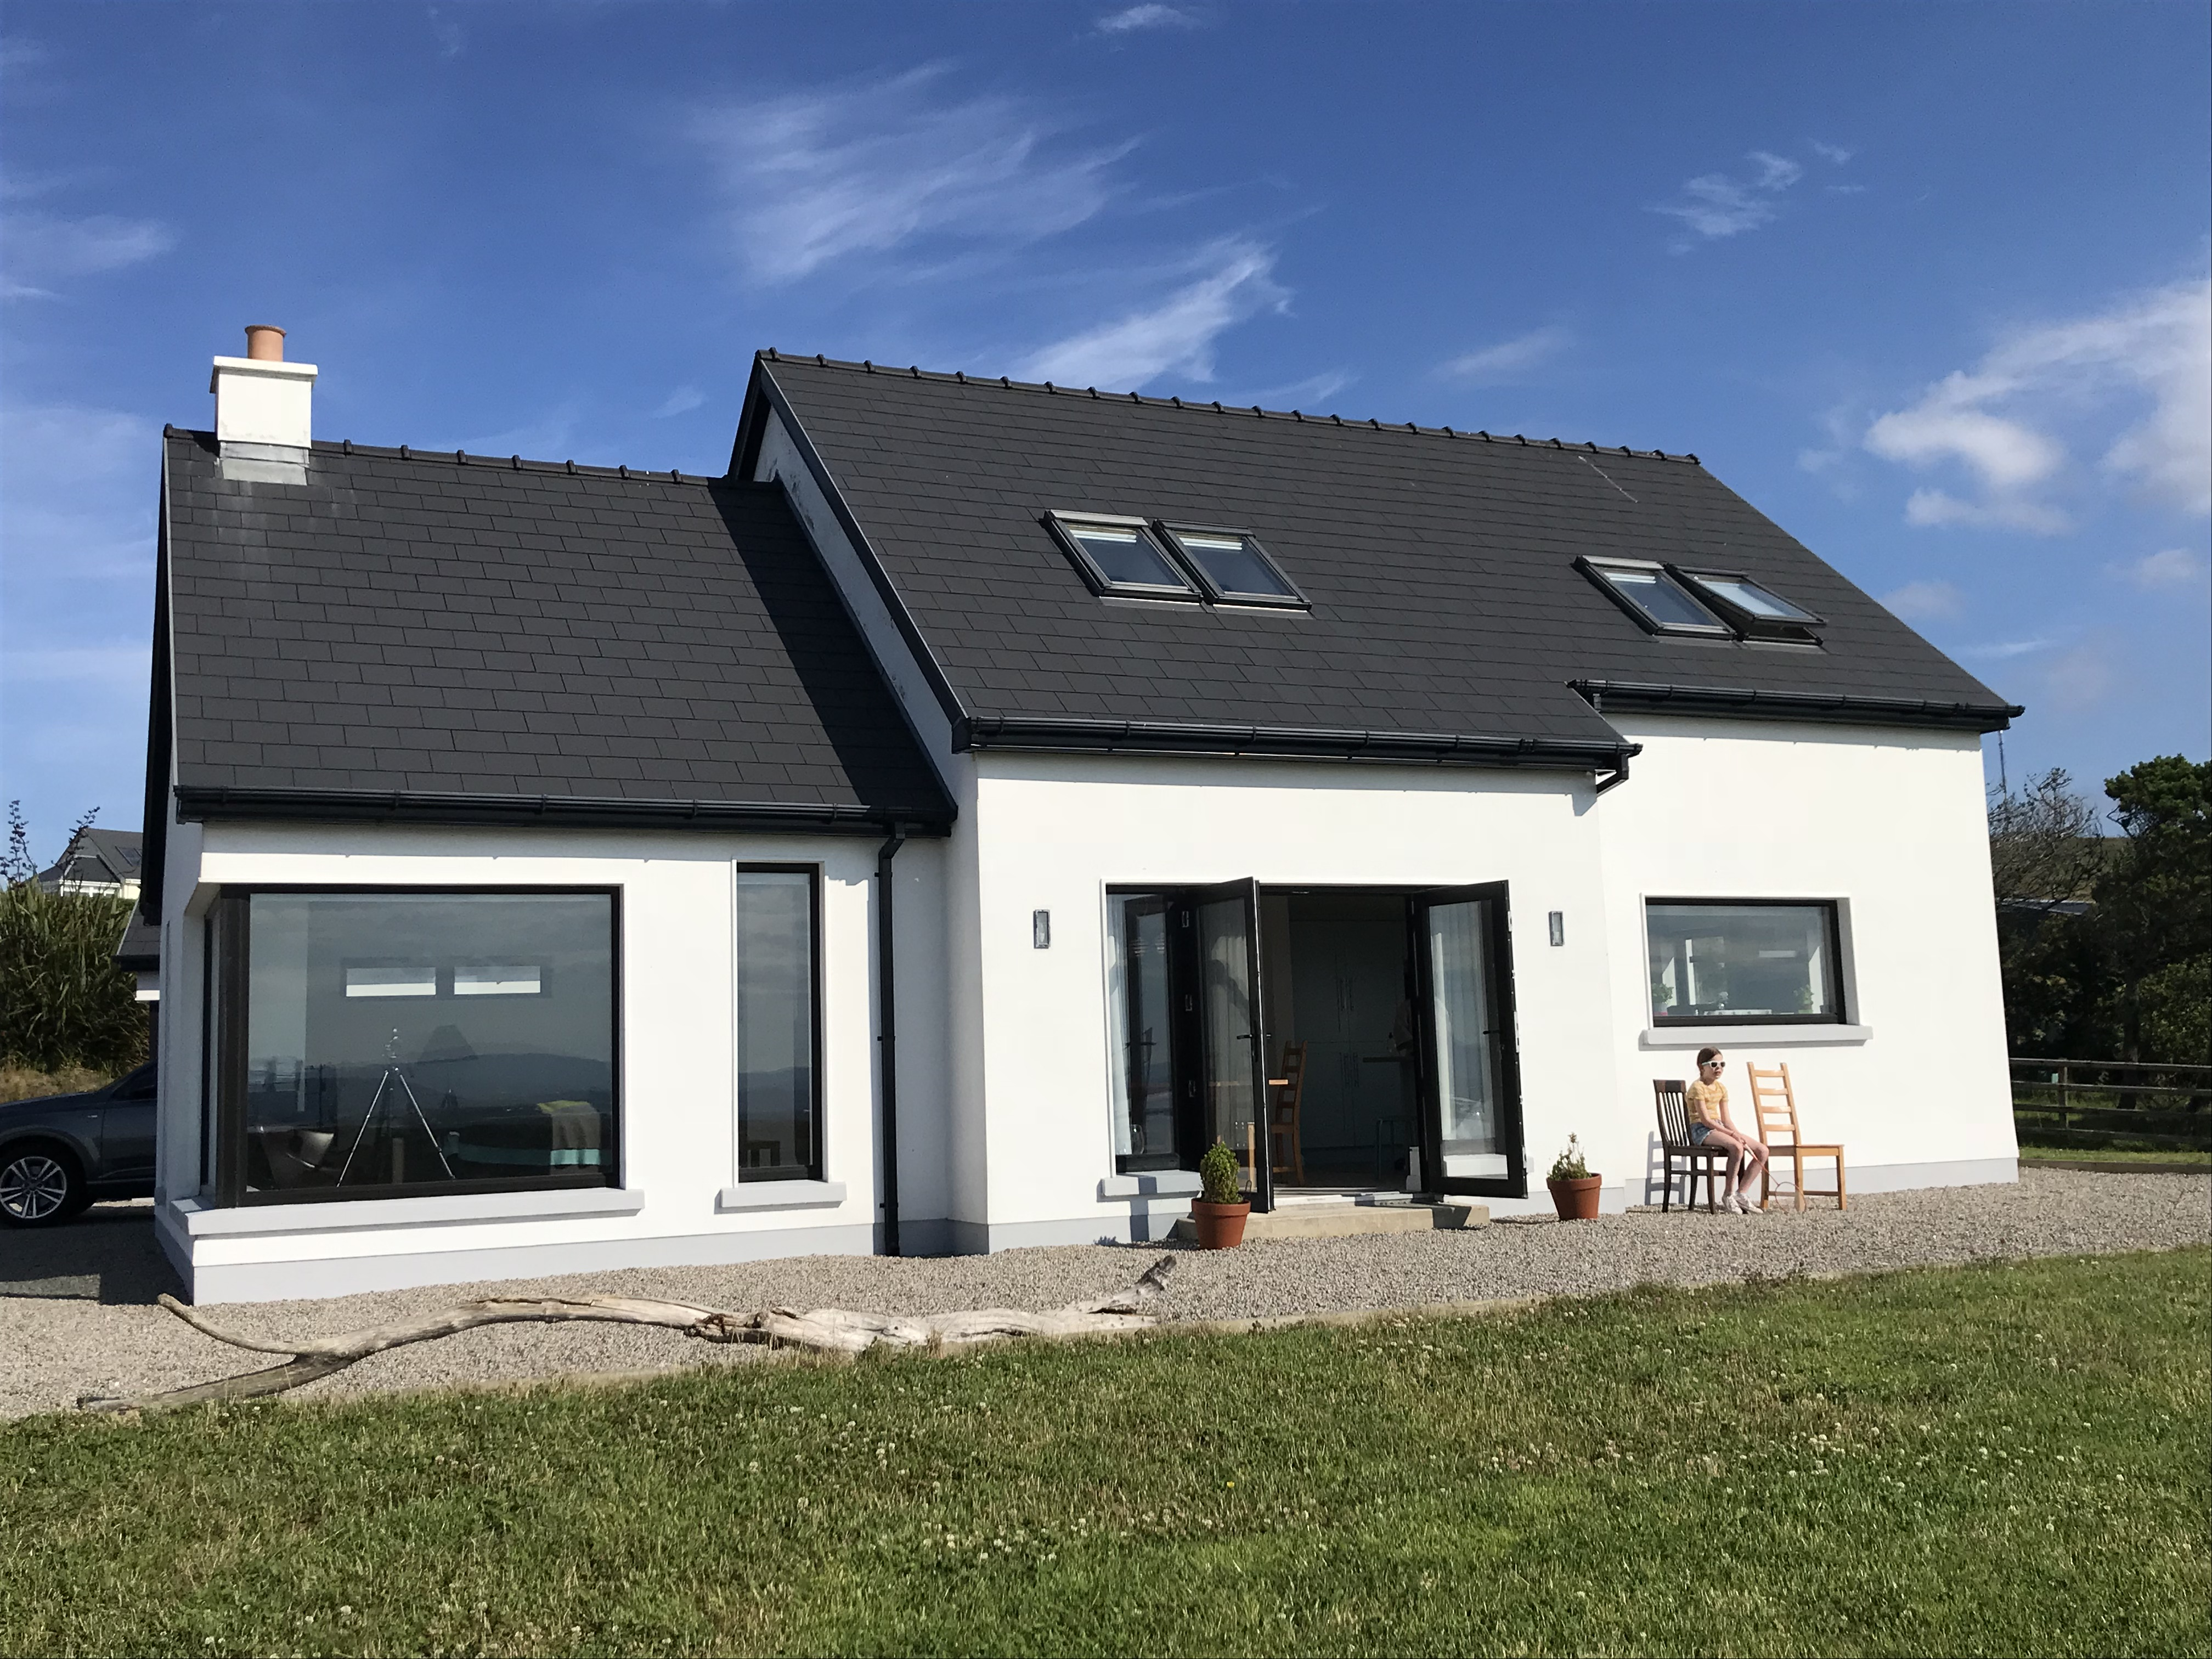 Arranmore Island Modern Home 5 Star Built In 2013 Houses For Rent In Arranmore Donegal Ireland